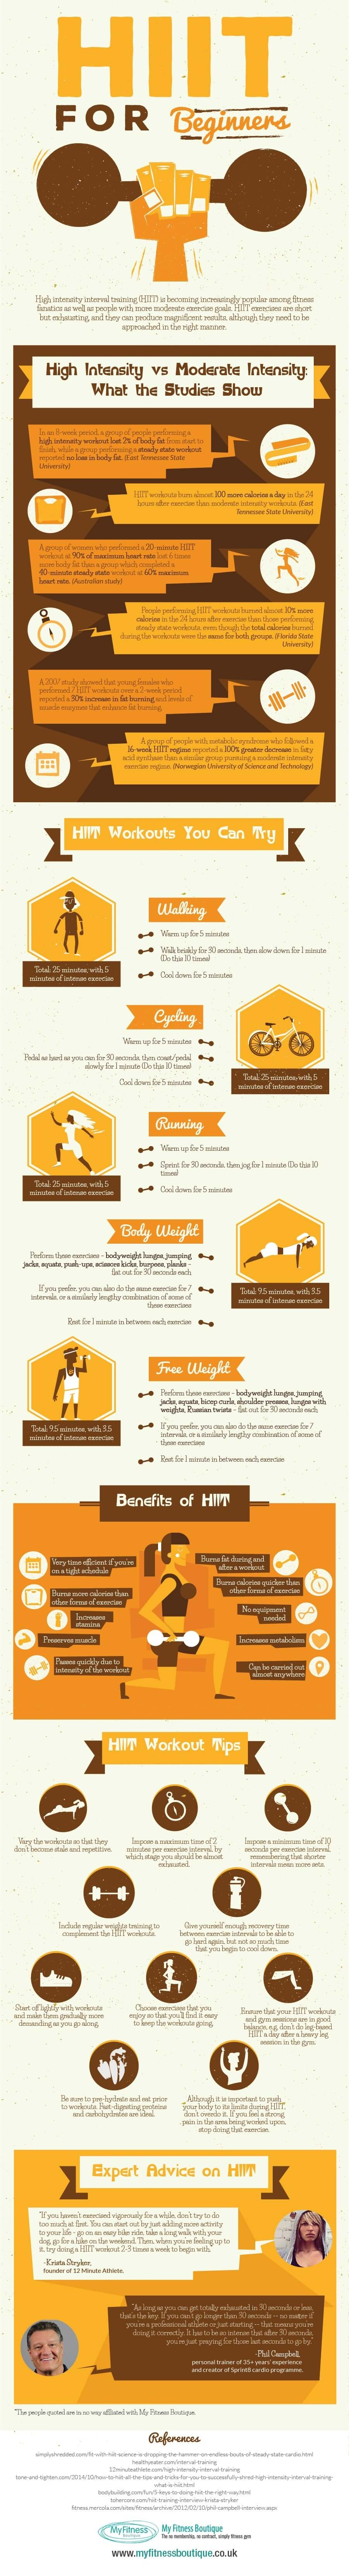 hiit-for beginners0